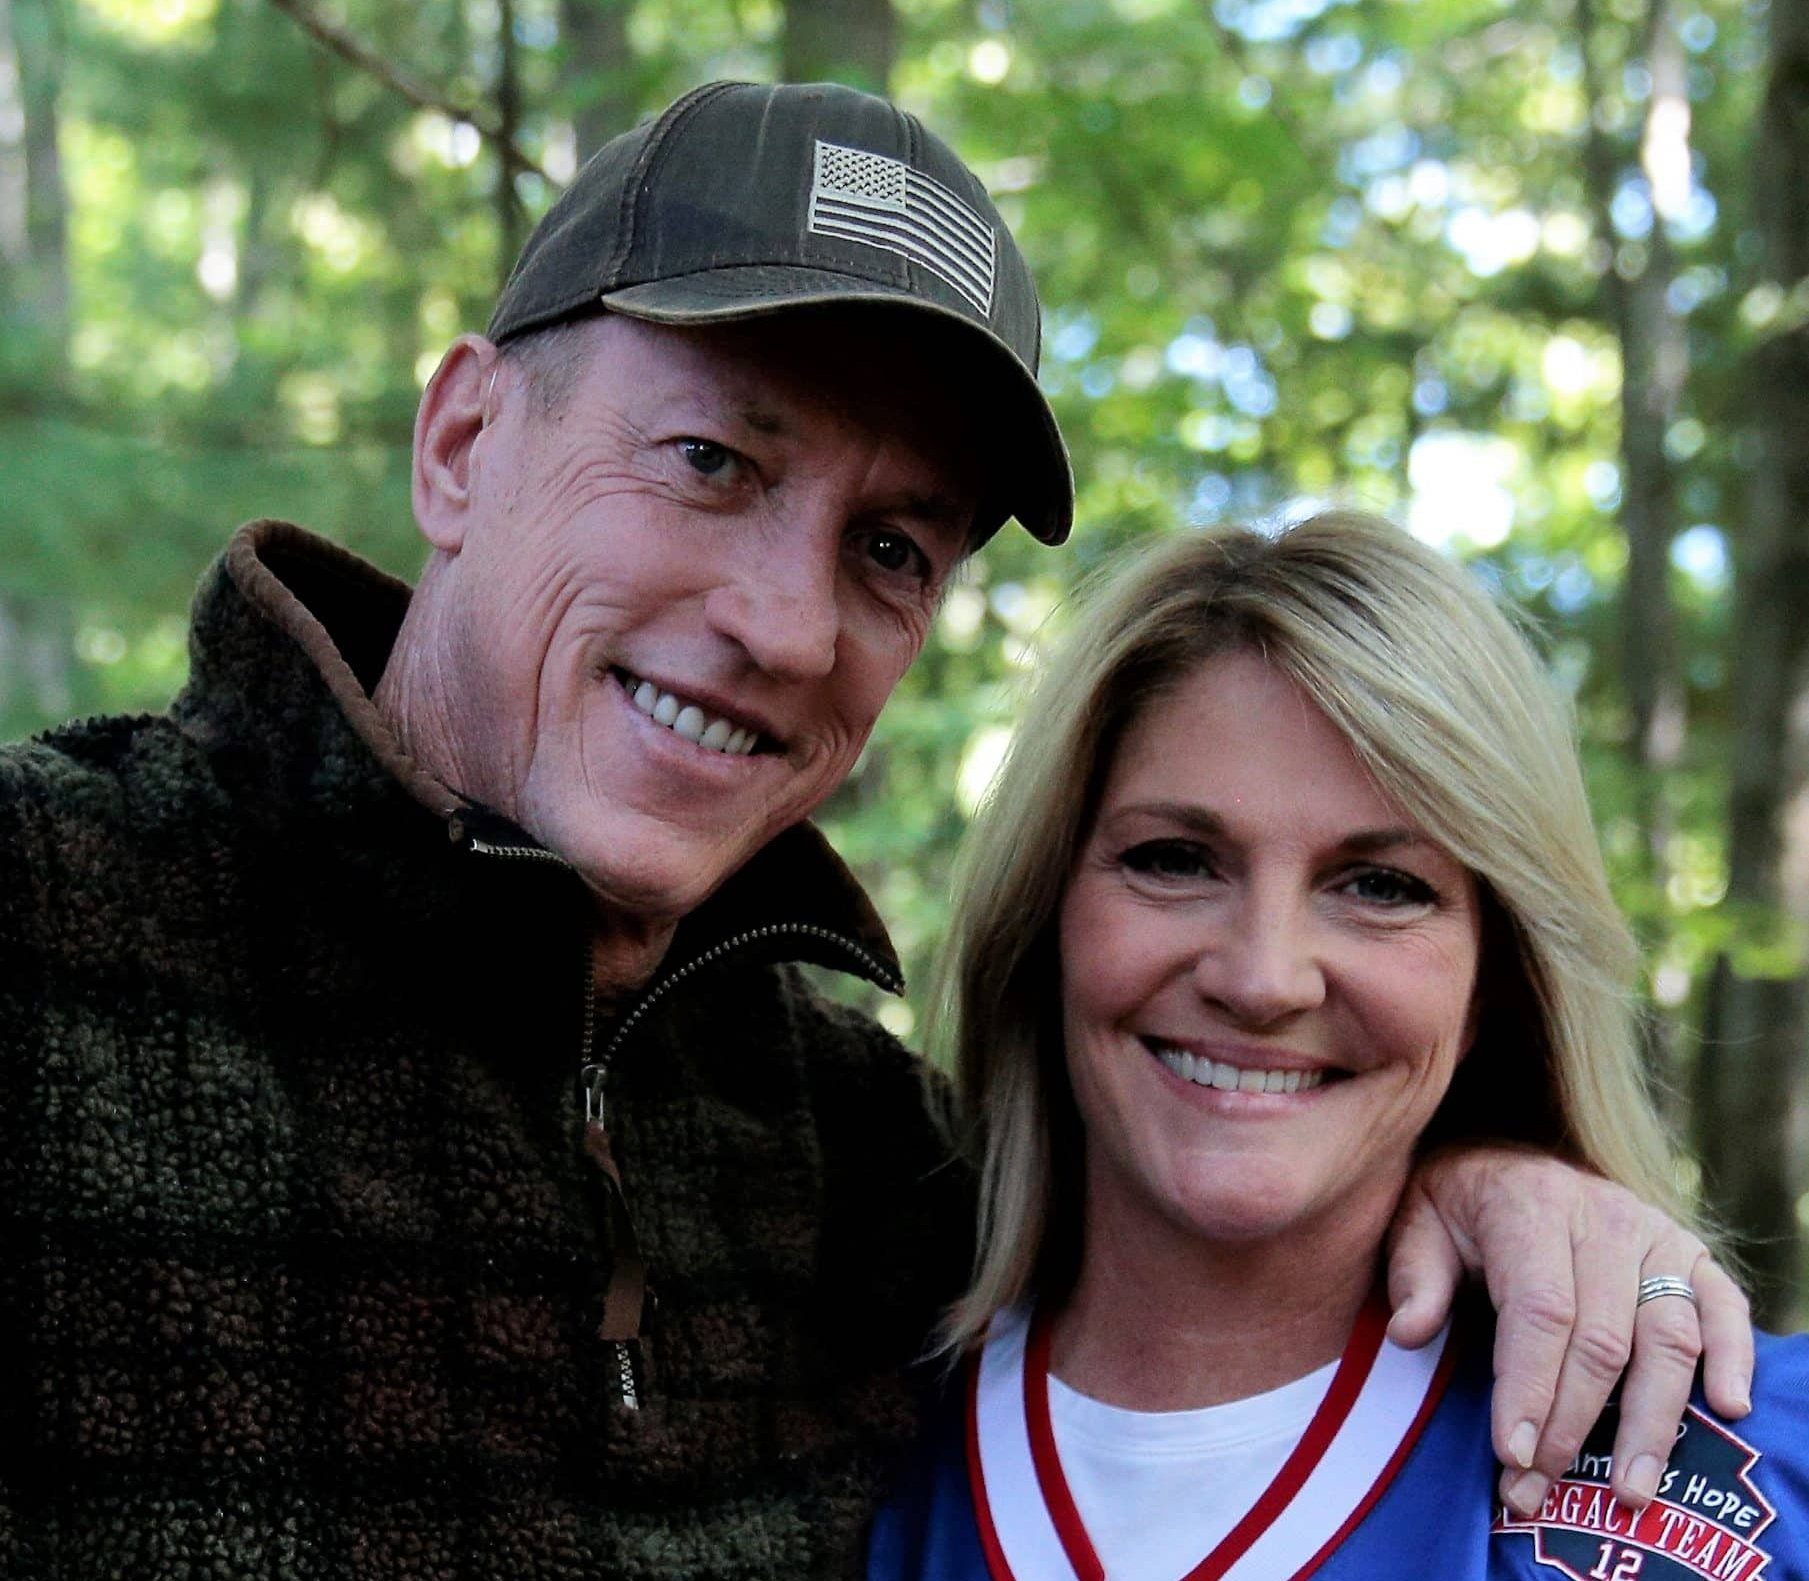 Happy birthday to Jim Kelly, former NFL quarterback, head and neck cancer survivor, and 2017 spokesperson!